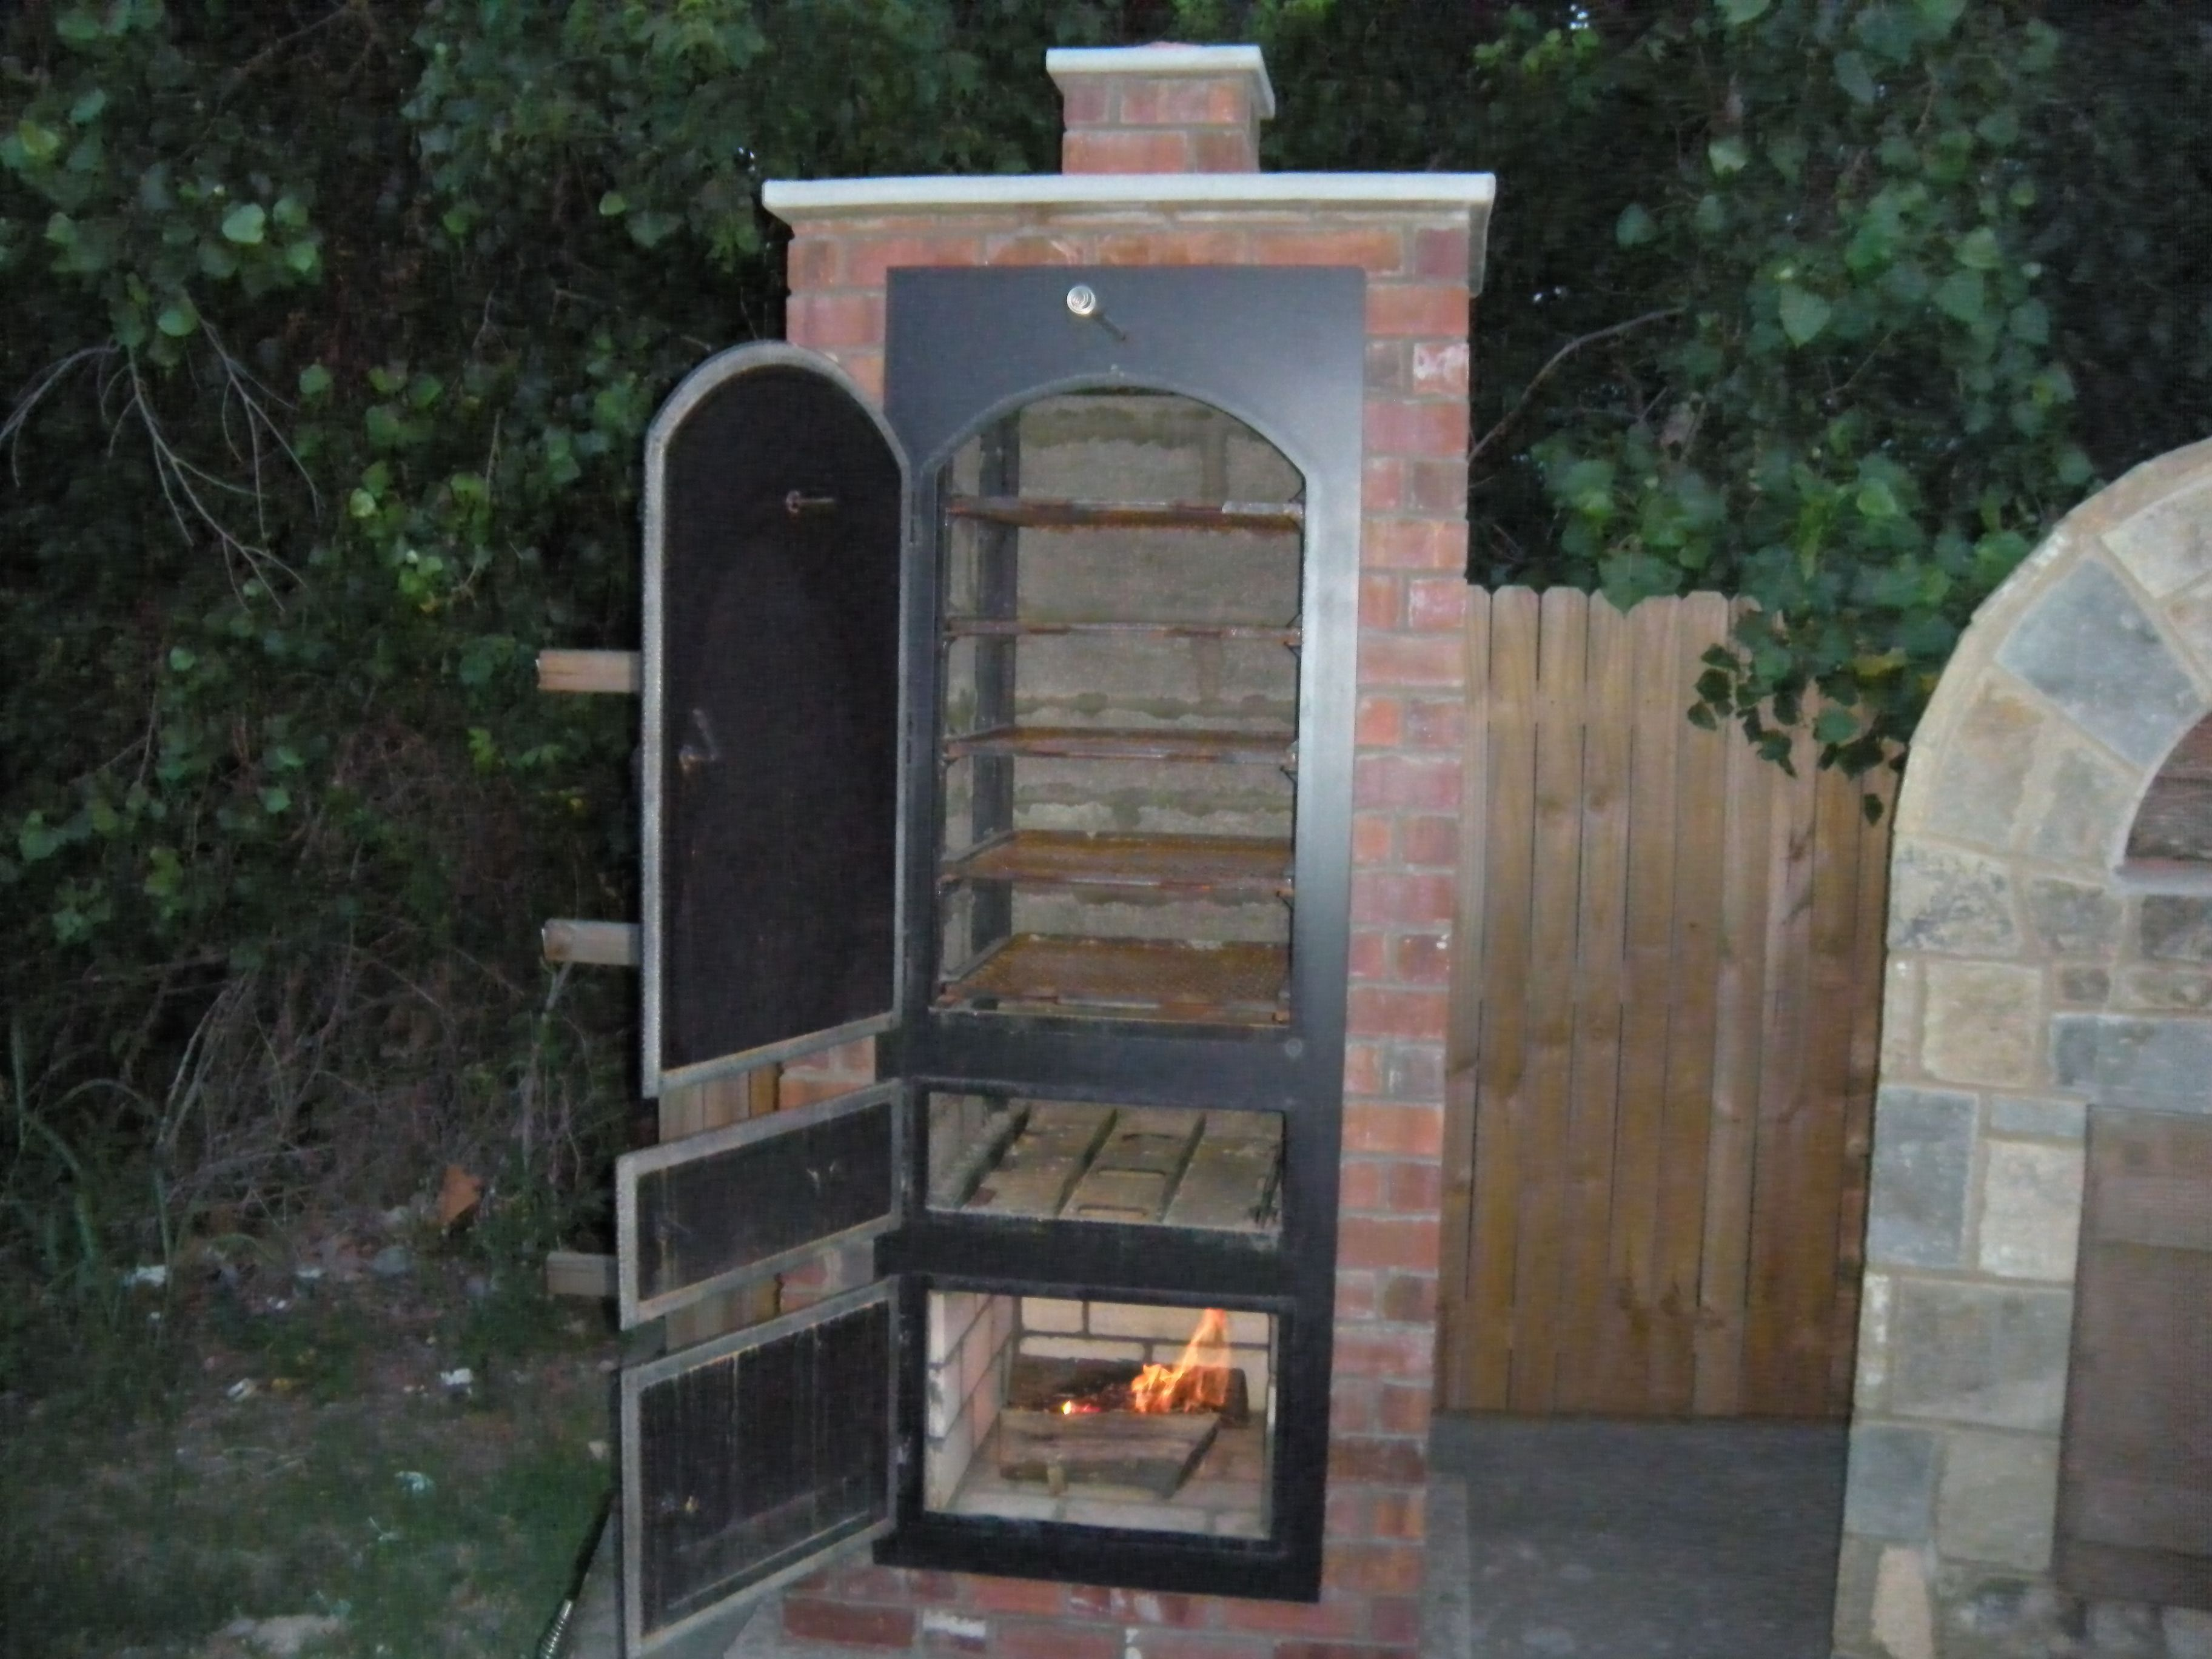 Stone Age Manufacturing Big Pig Cabinet Smoker In 2020 Outdoor Living Kits Bbq Grill Design Brick Smoker